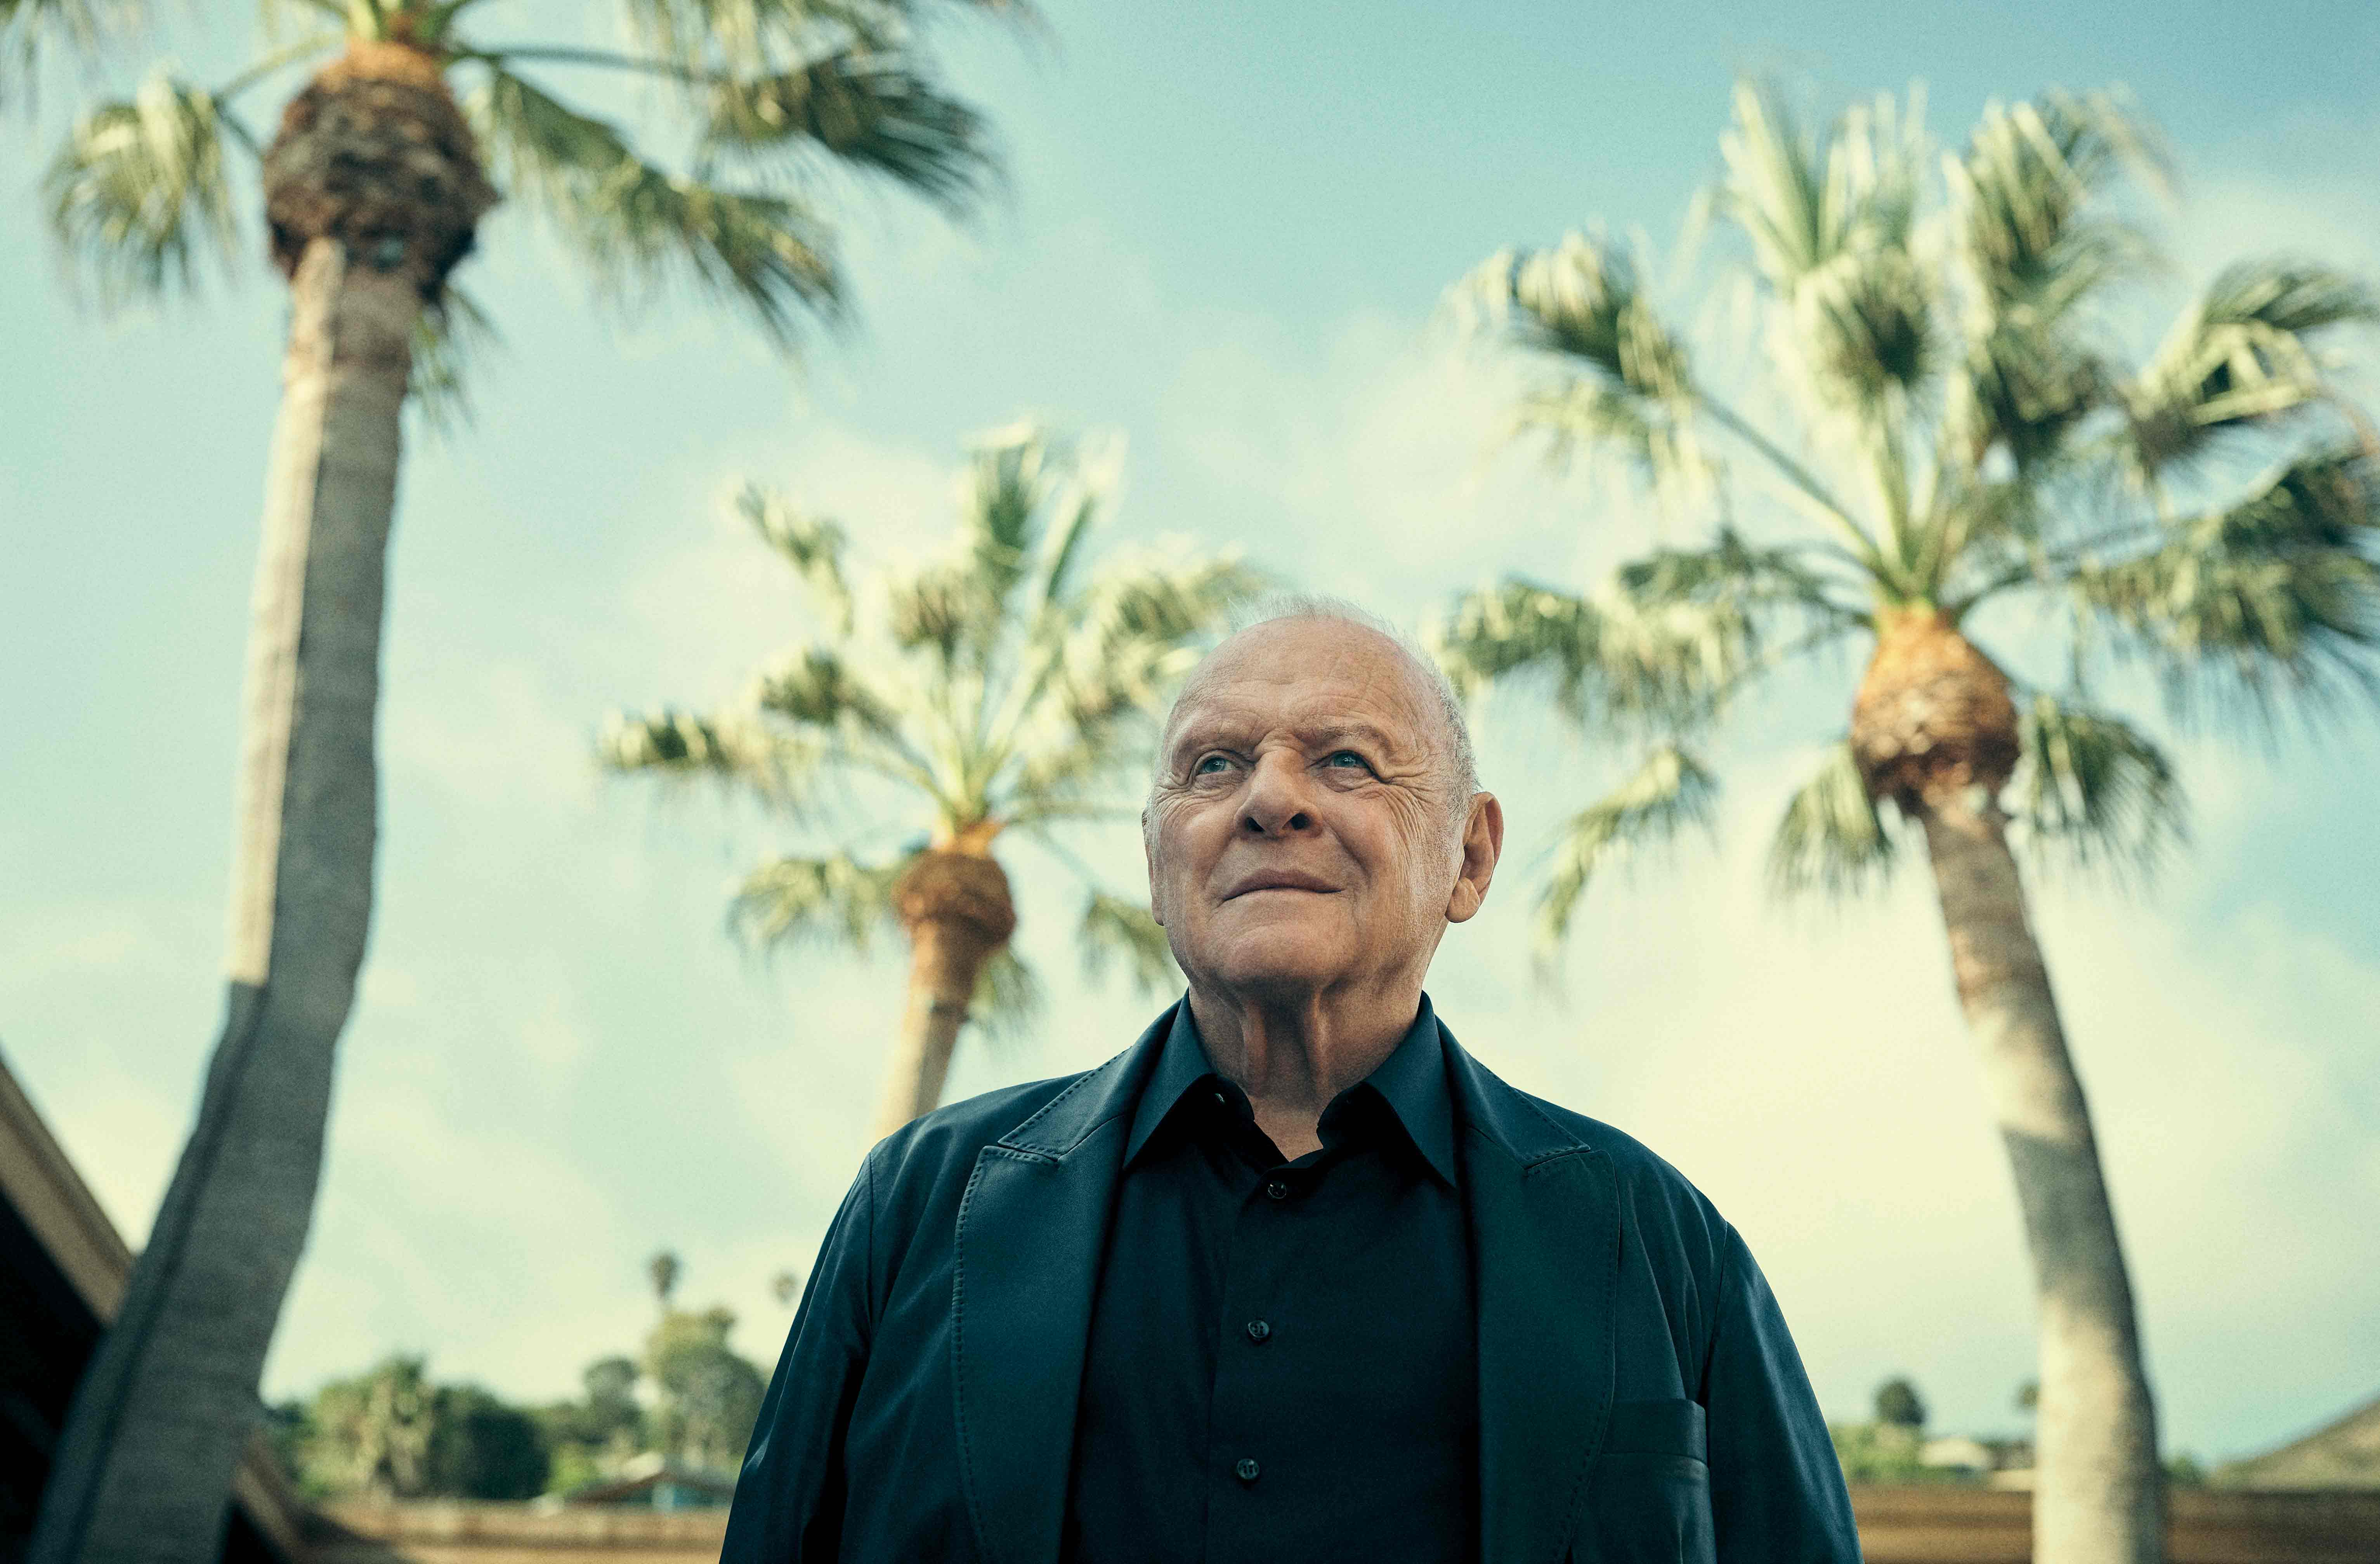 Veteran actor Anthony Hopkins takes us through his approach to life and career in Hollywood